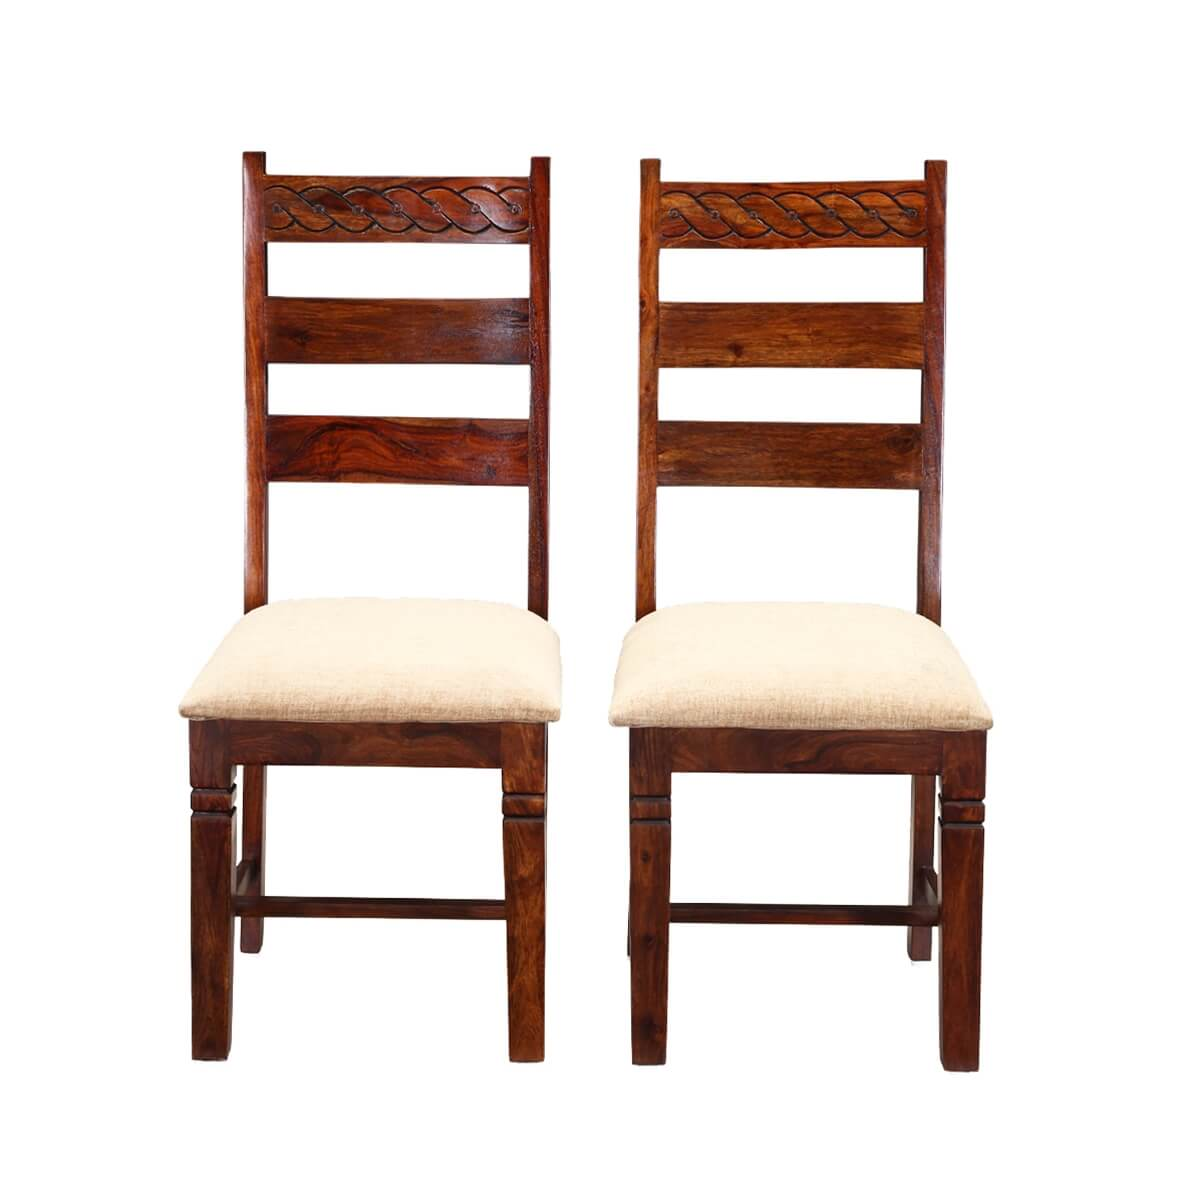 unfinished ladder back chairs cape cod chair company handcrafted solid wood 2pc upholstered